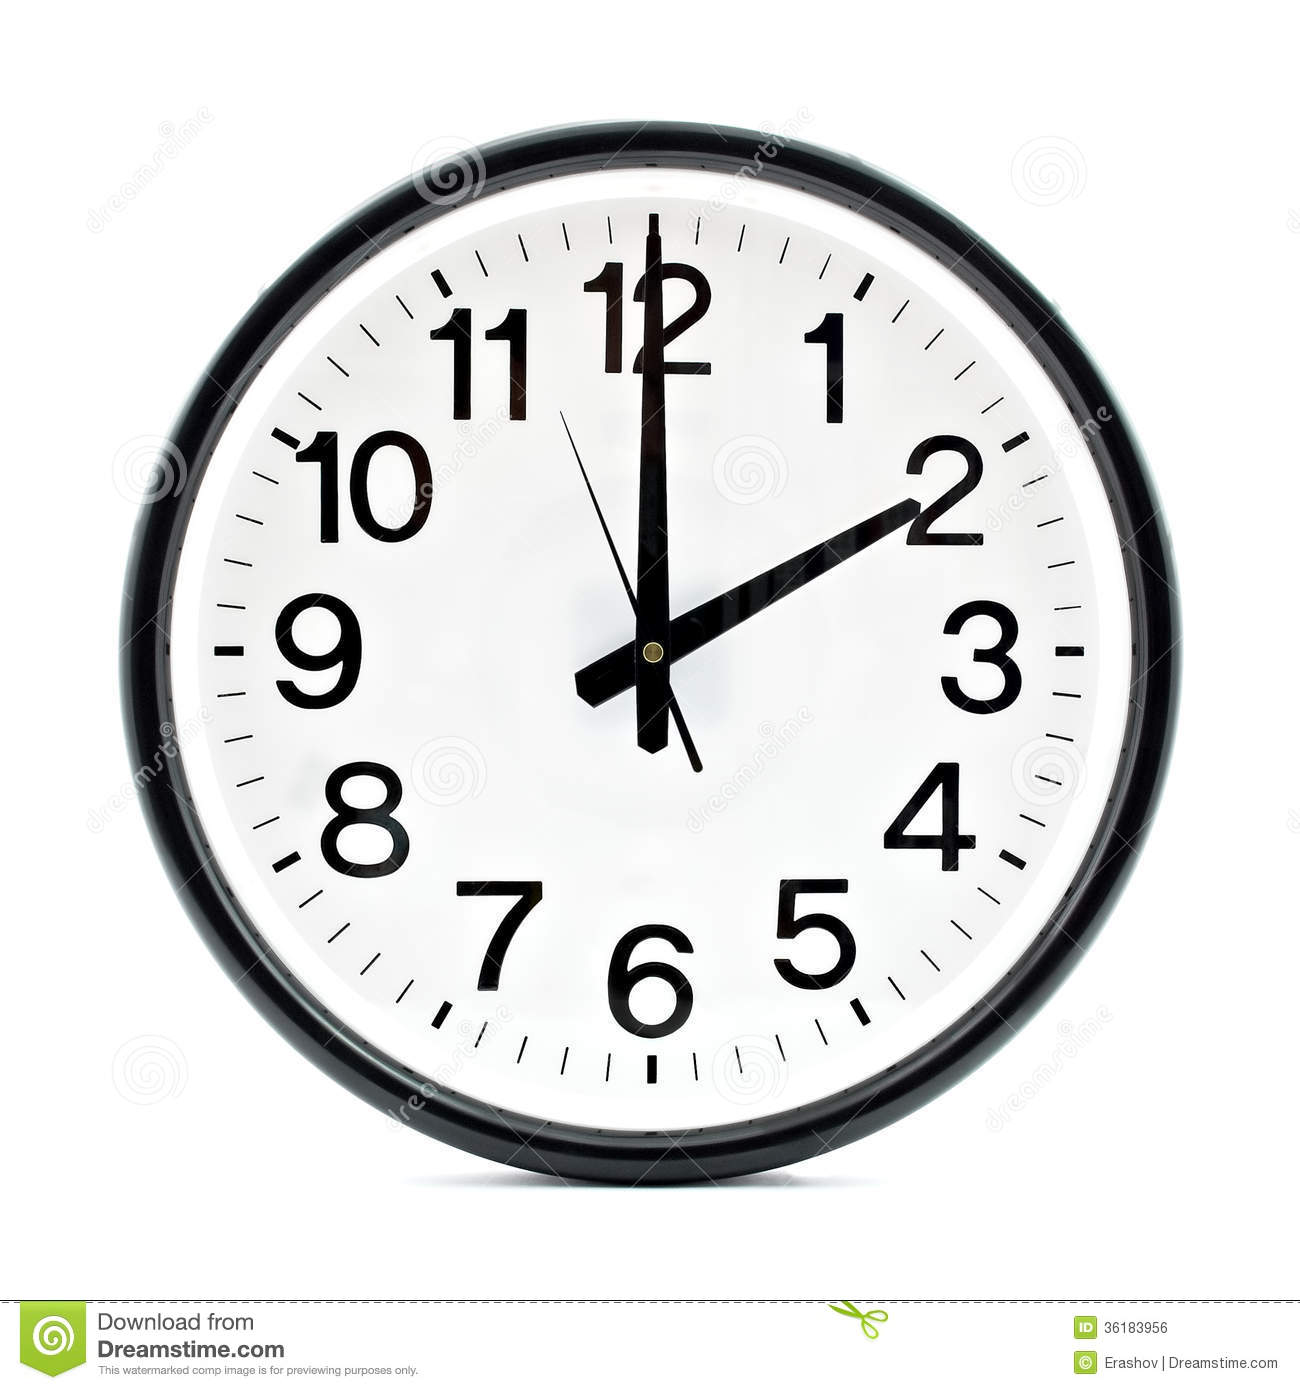 schwarze wanduhr stockfoto bild von stunde wand wei 36183956. Black Bedroom Furniture Sets. Home Design Ideas